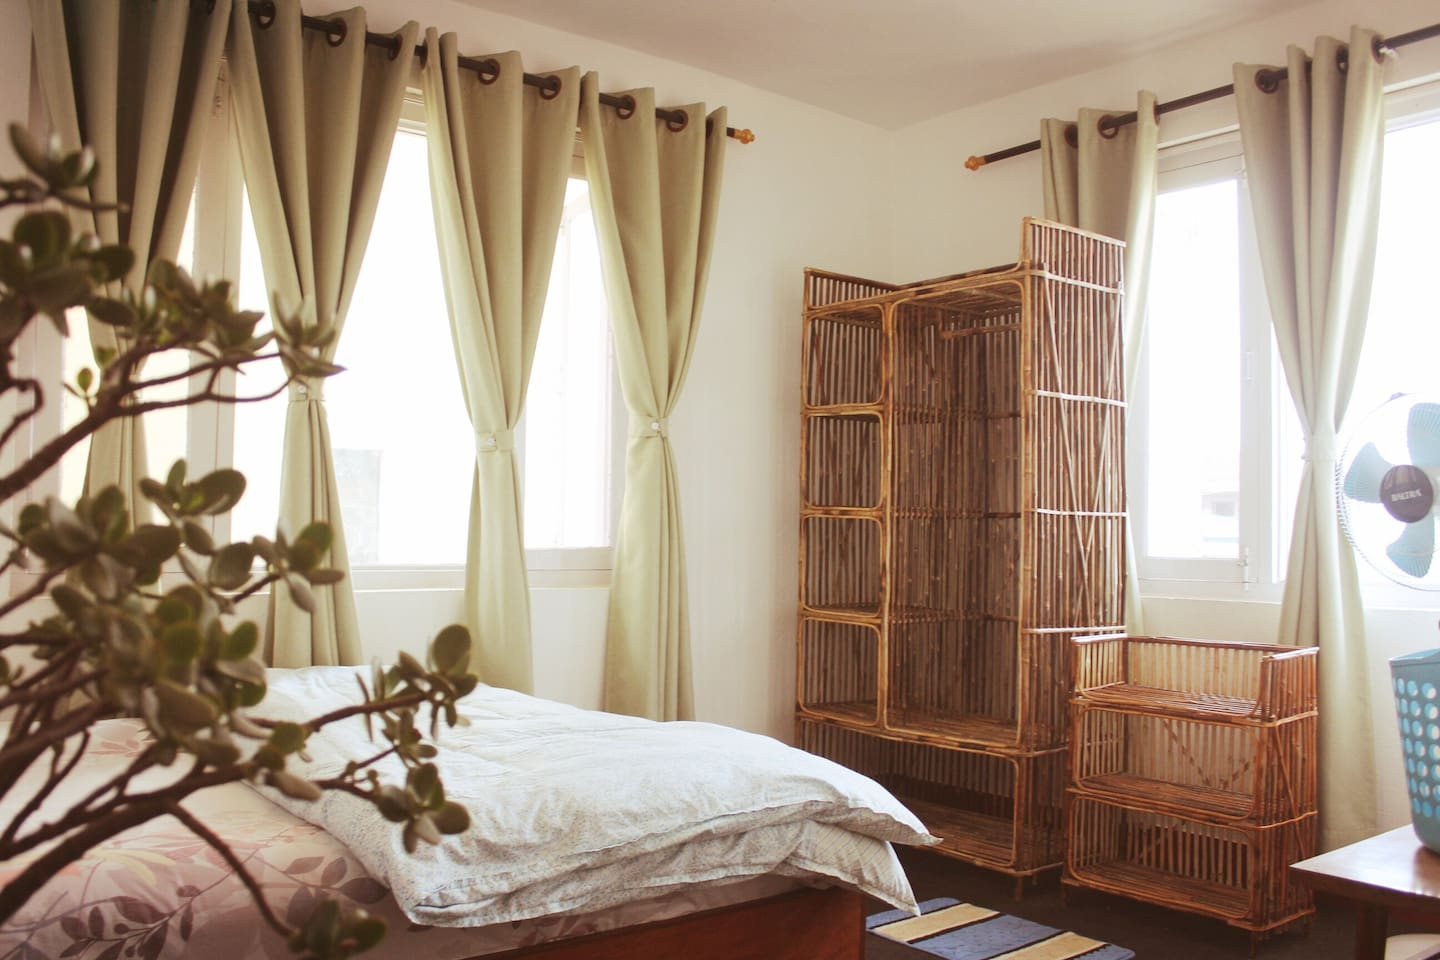 The room is very much homely environment. We provide very clean and healthy environment for a good sleep.